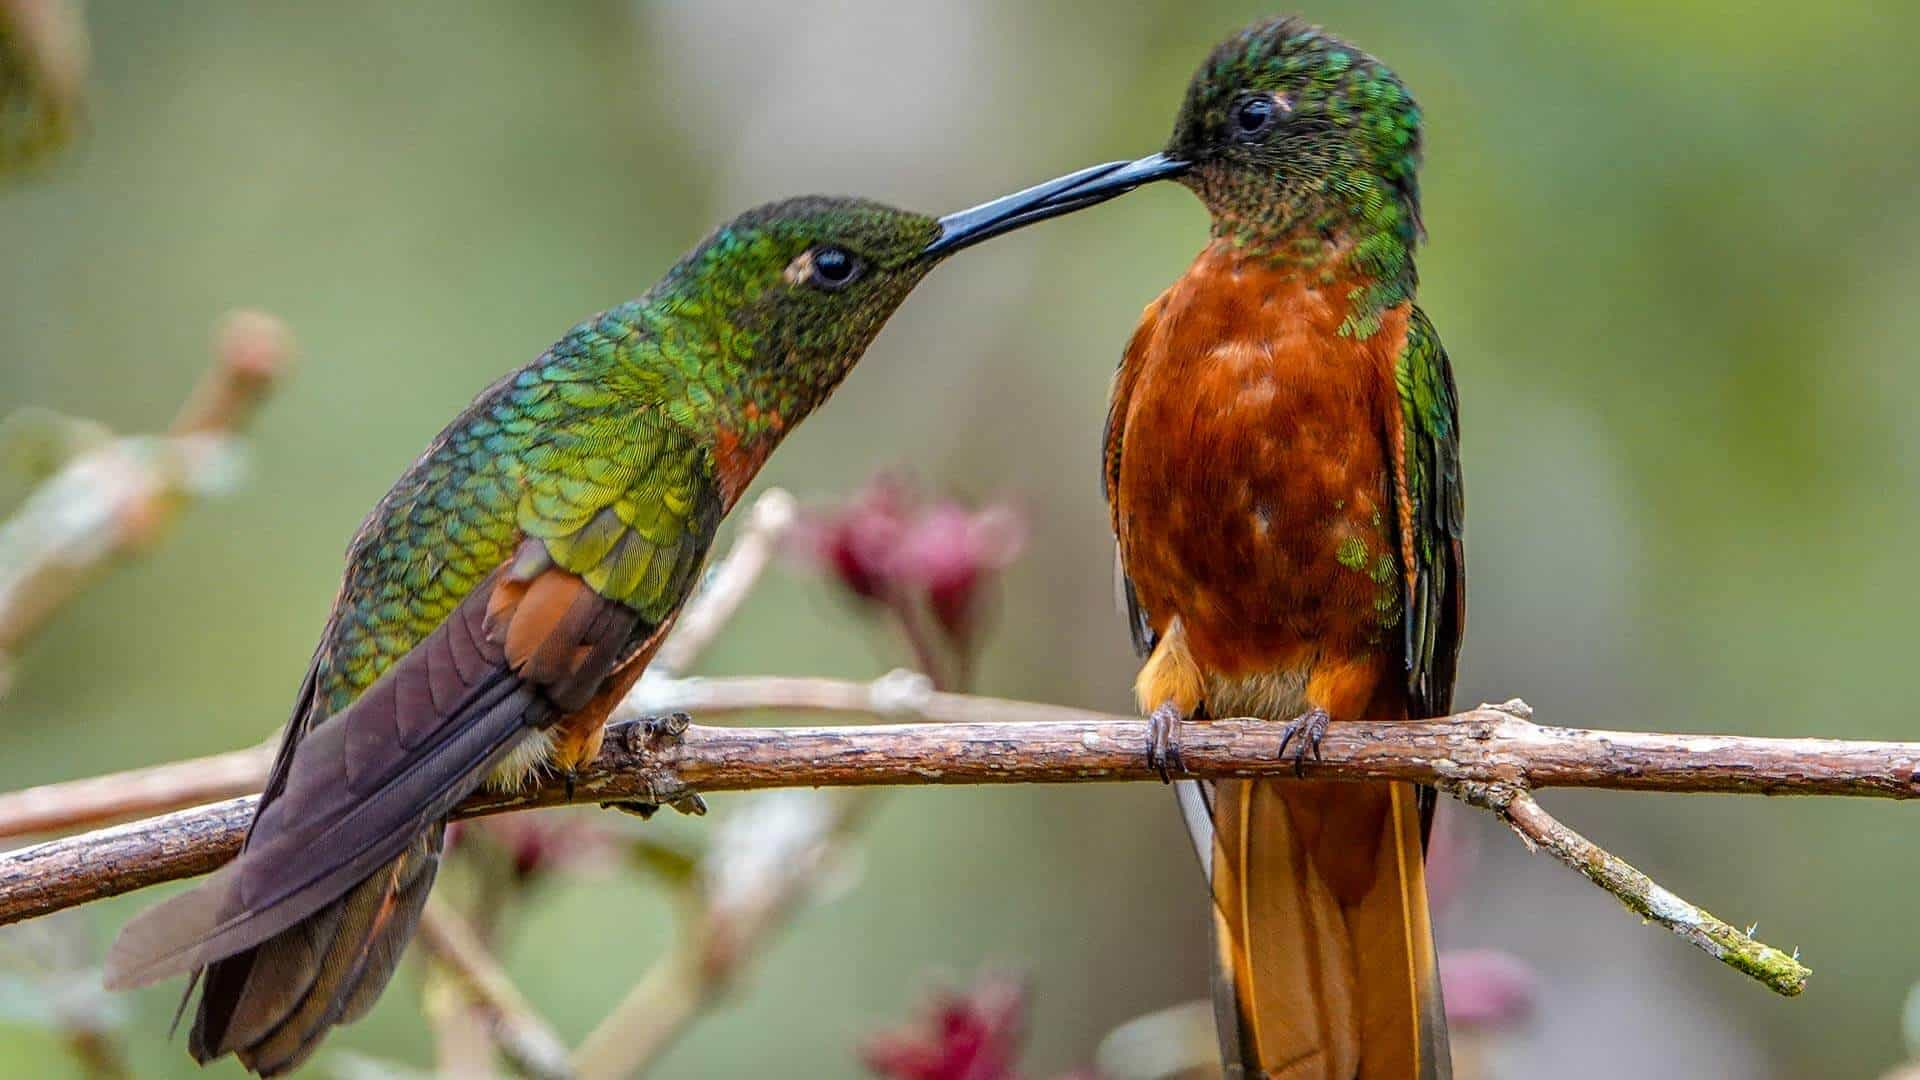 ecuador photography two hummingbirds together on a branch